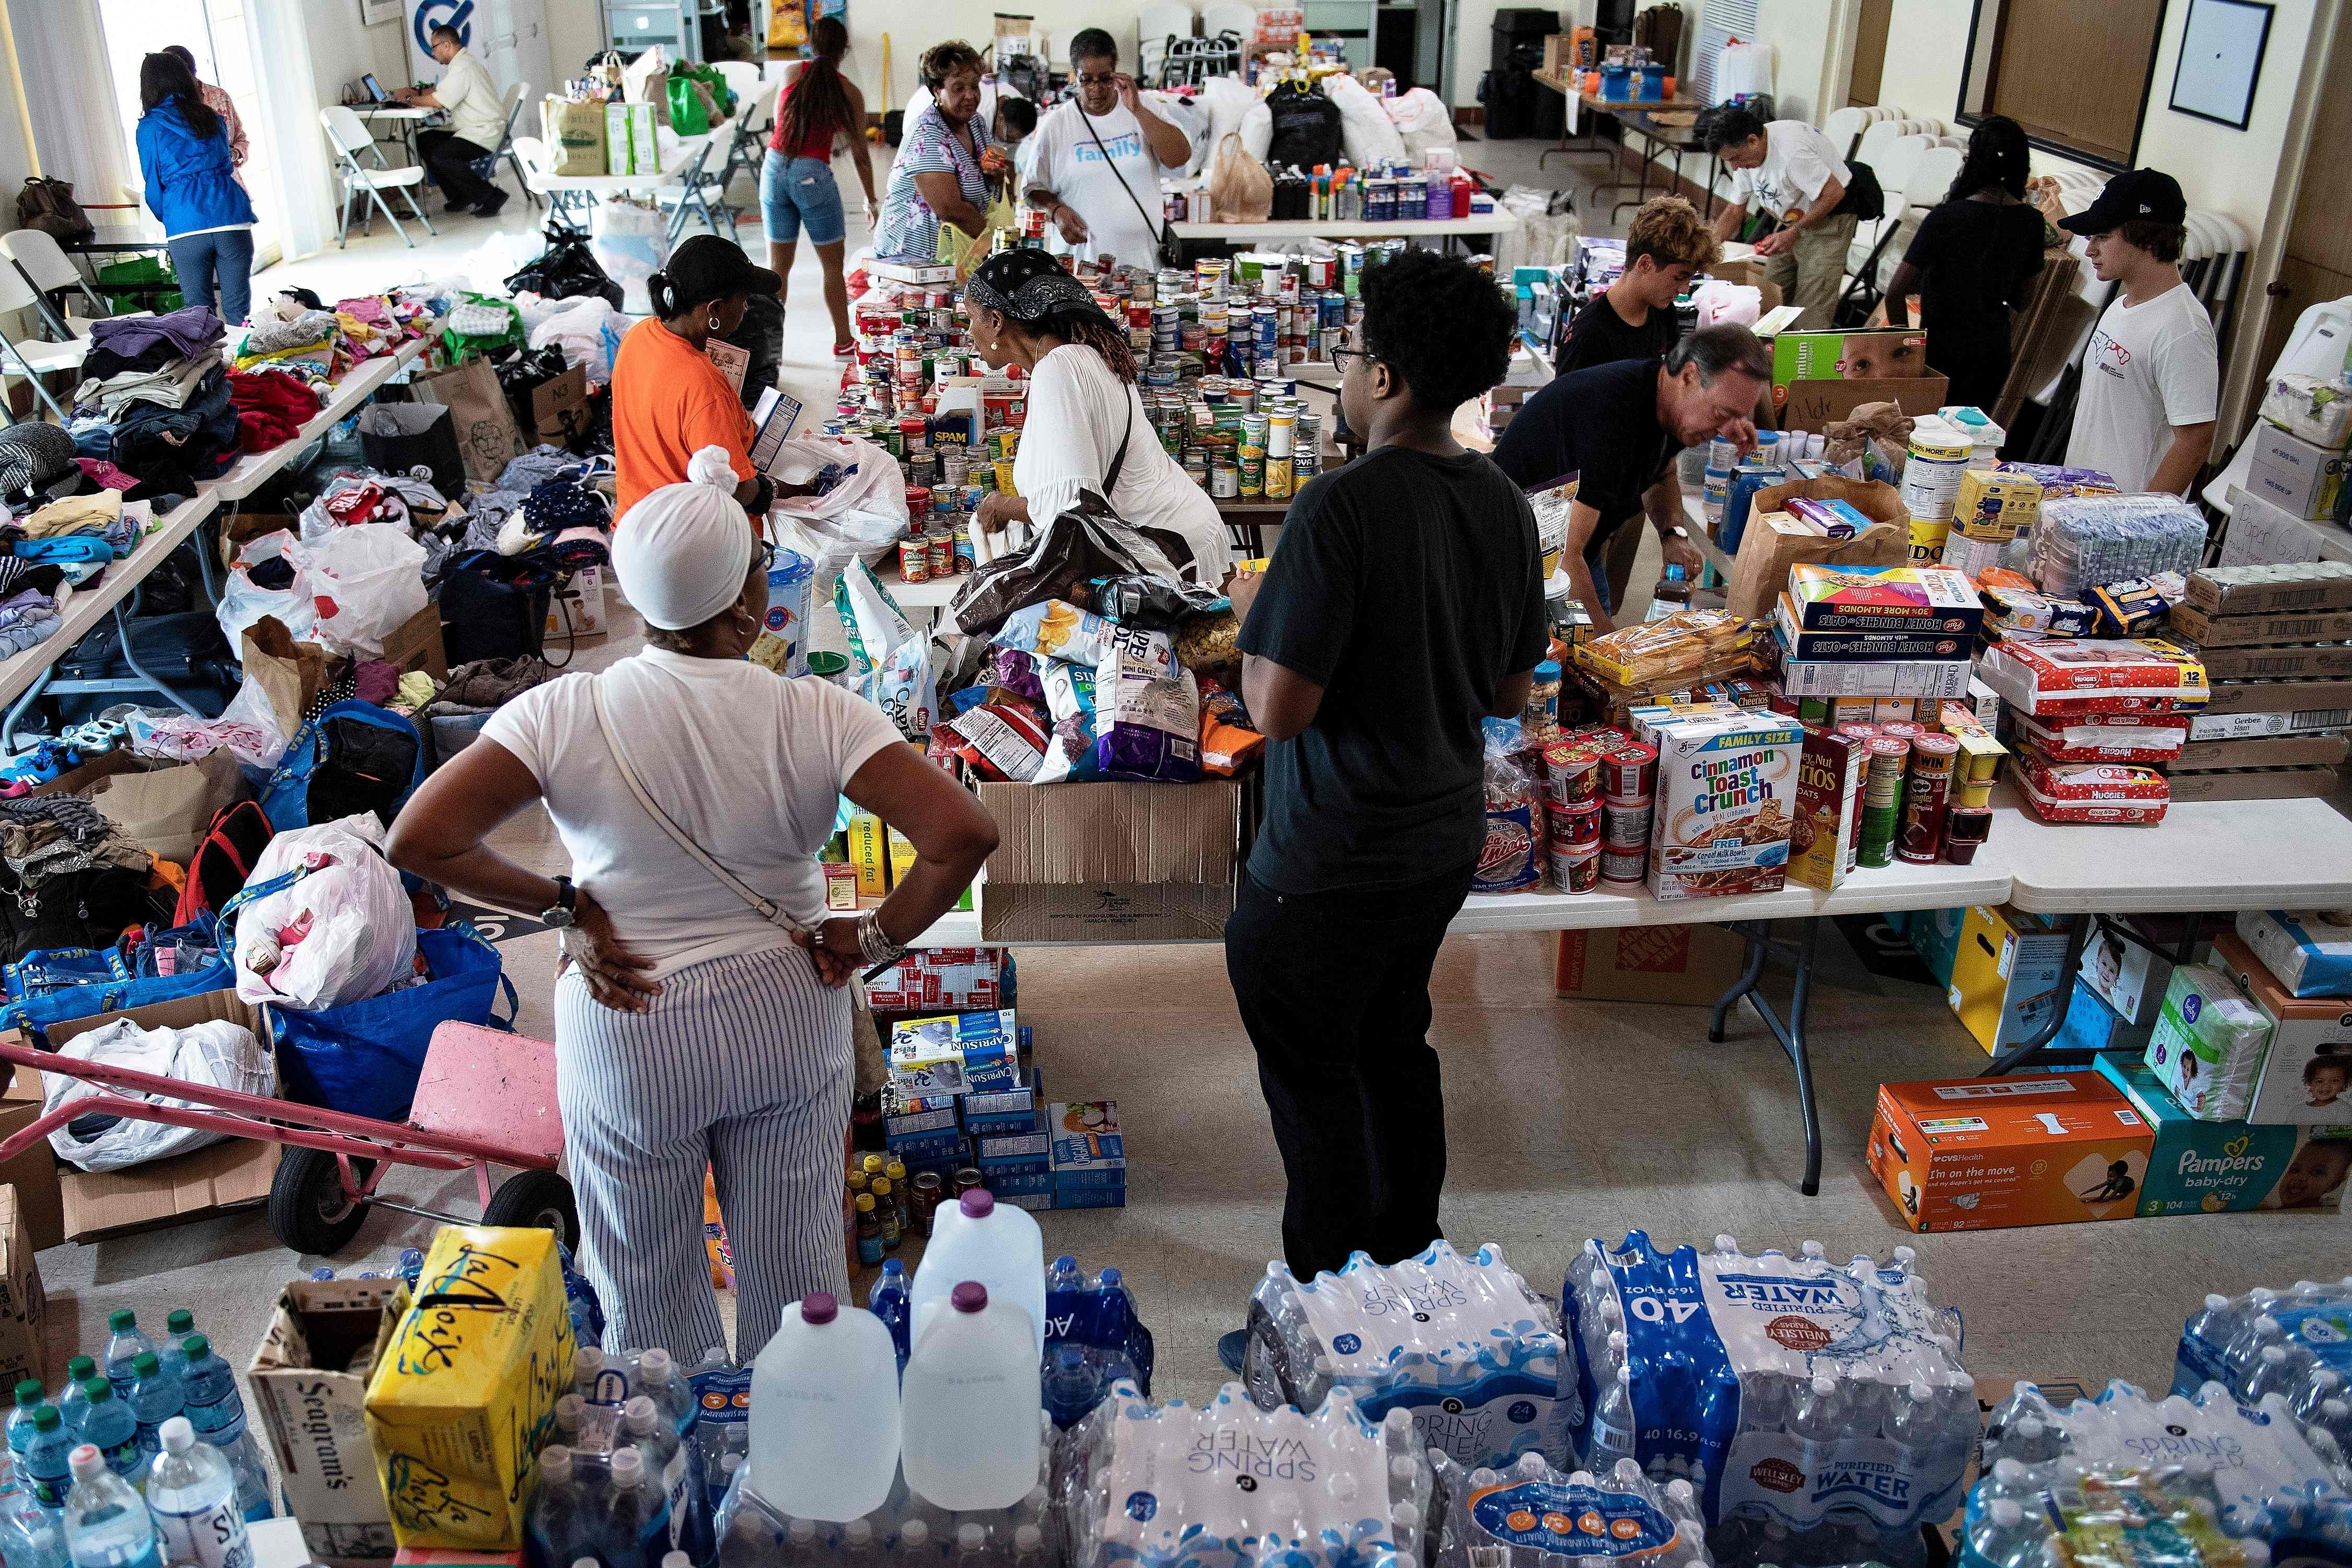 After Hurricane Dorian, Bahamas drowns in flood of donations, including expired food, soiled clothing